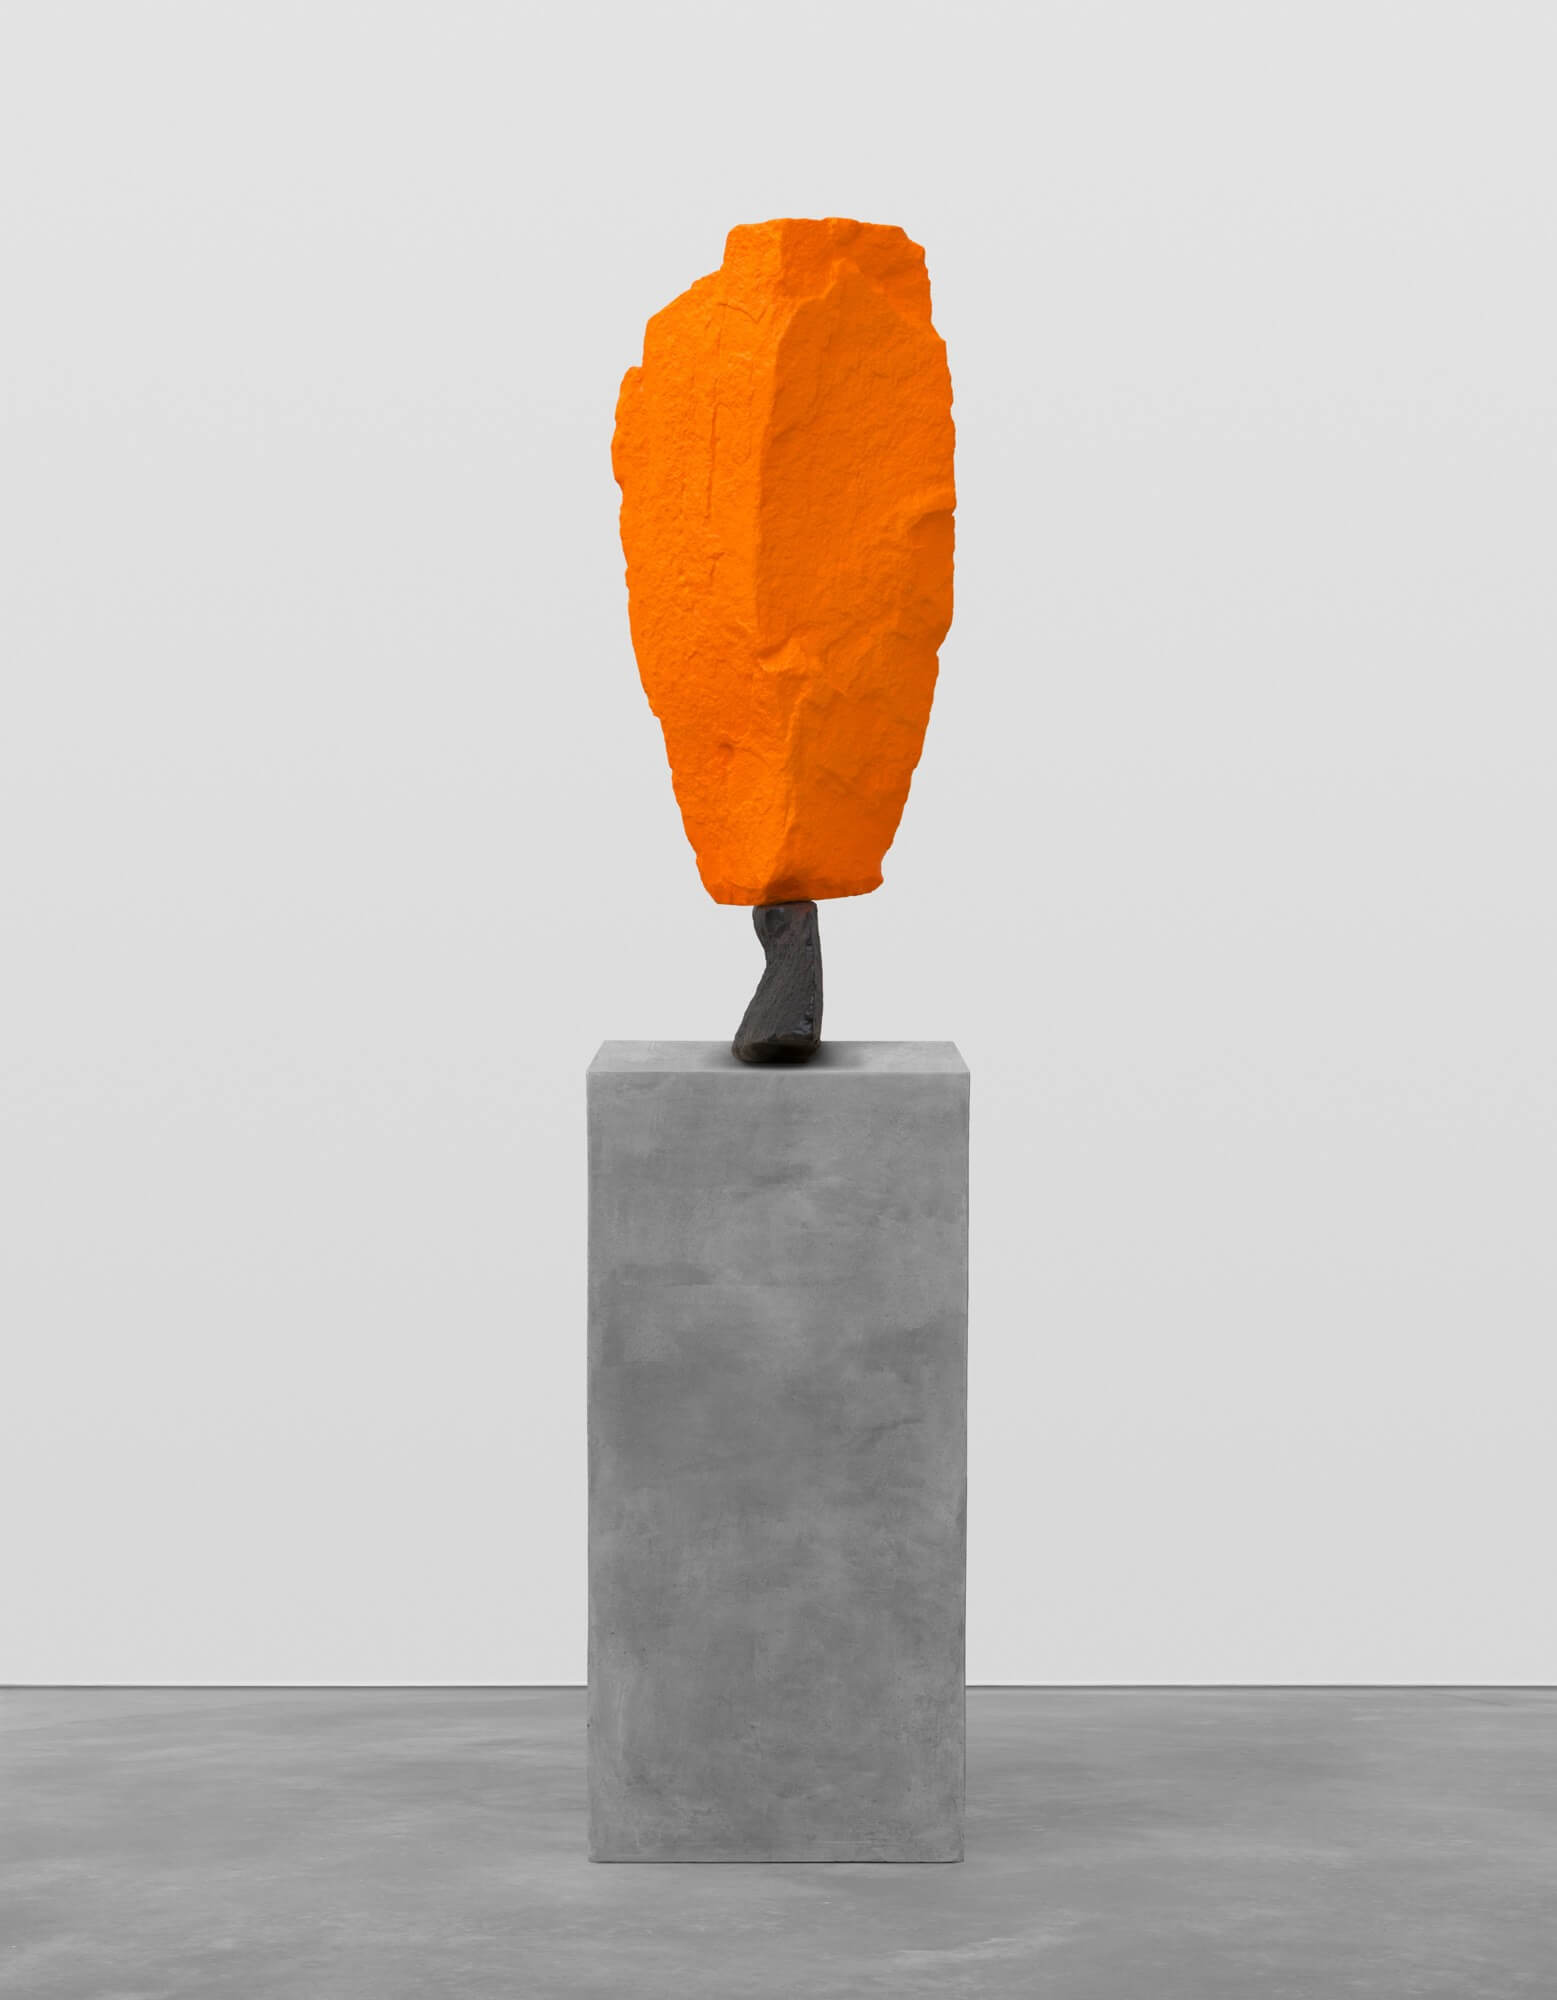 black orange mountain | UGO RONDINONE